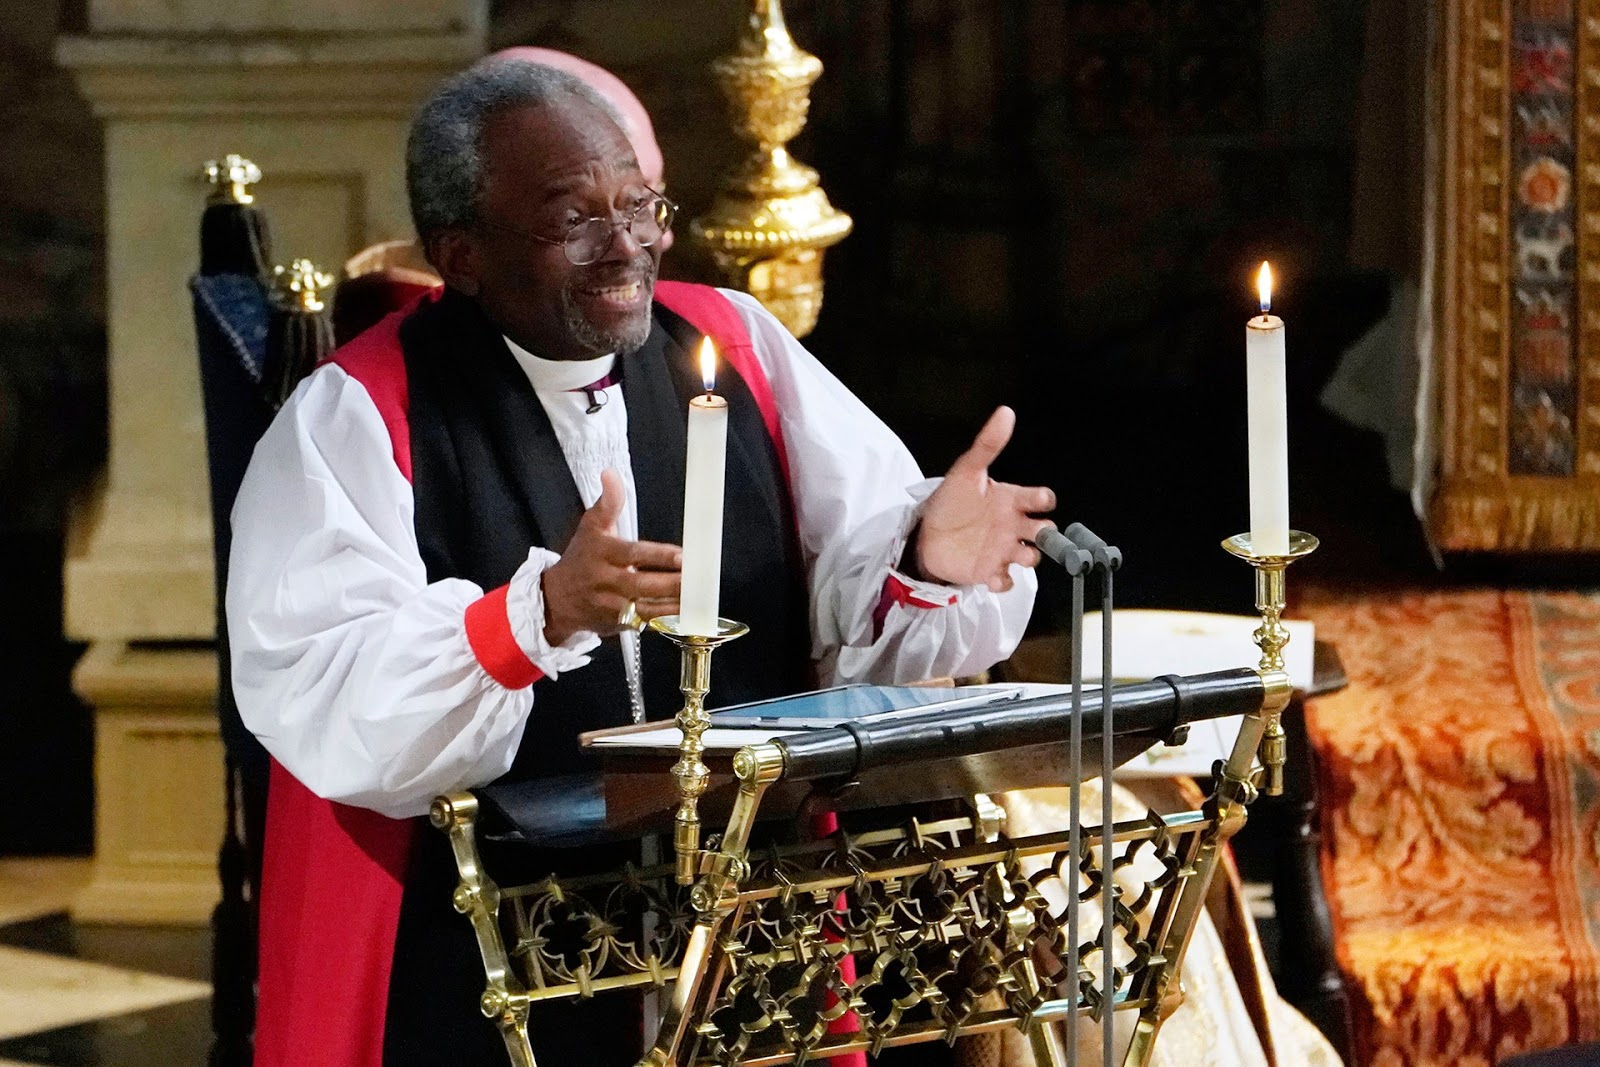 Harry & Megan's Wedding Sermon - Preacher Michael Curry